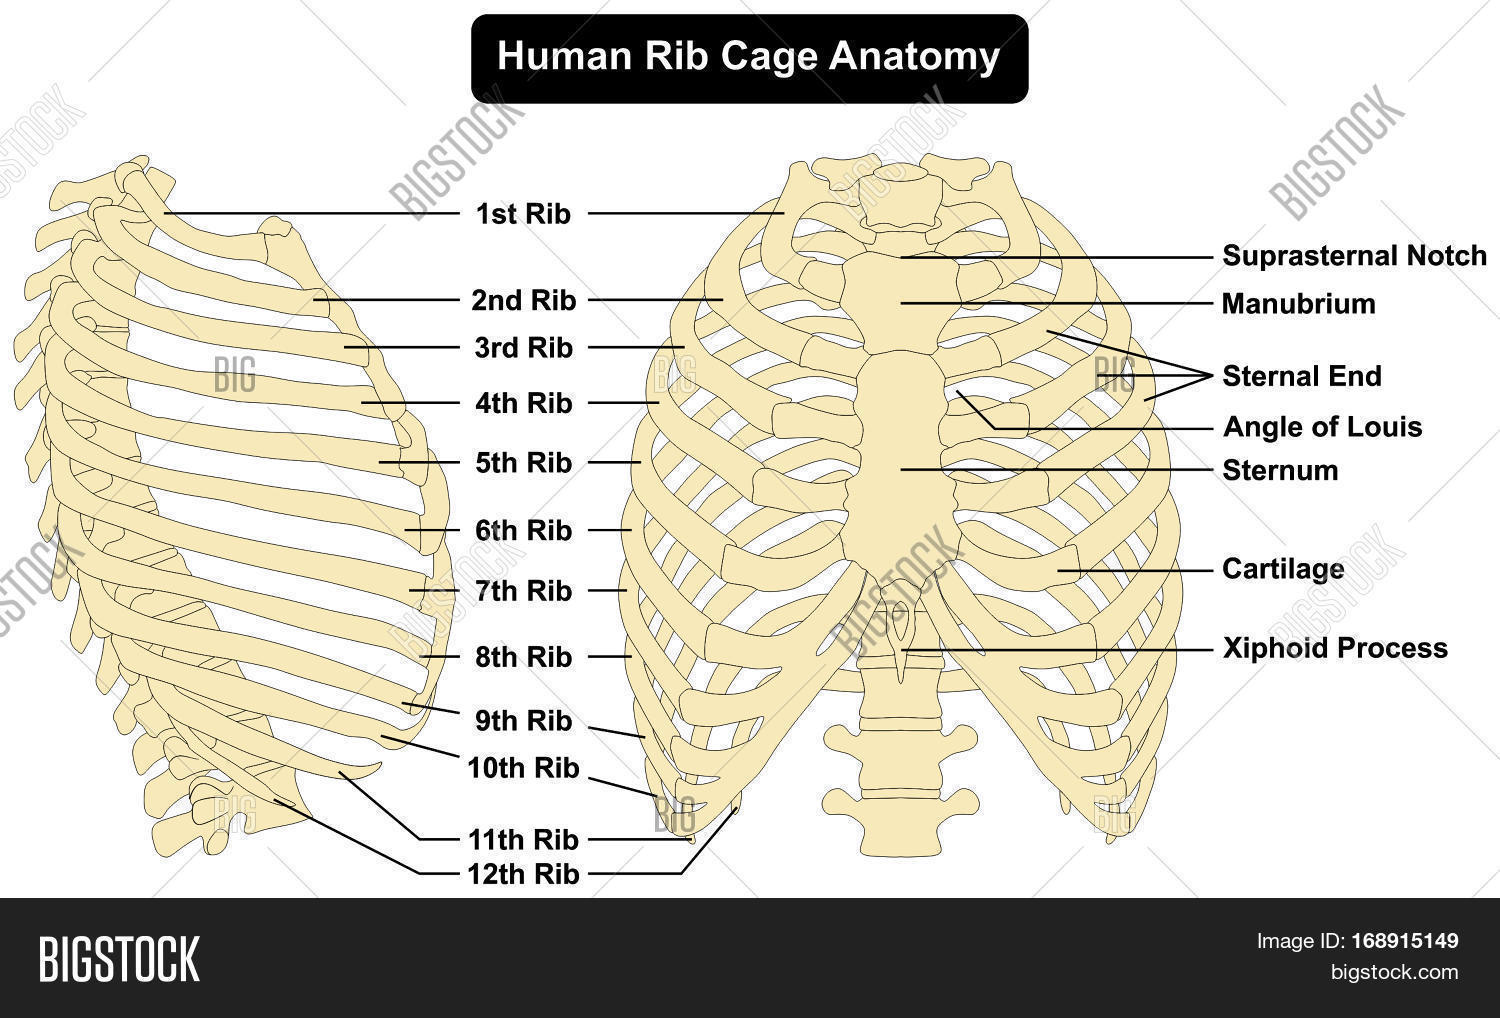 Human Body Rib Cage Image Photo Free Trial Bigstock